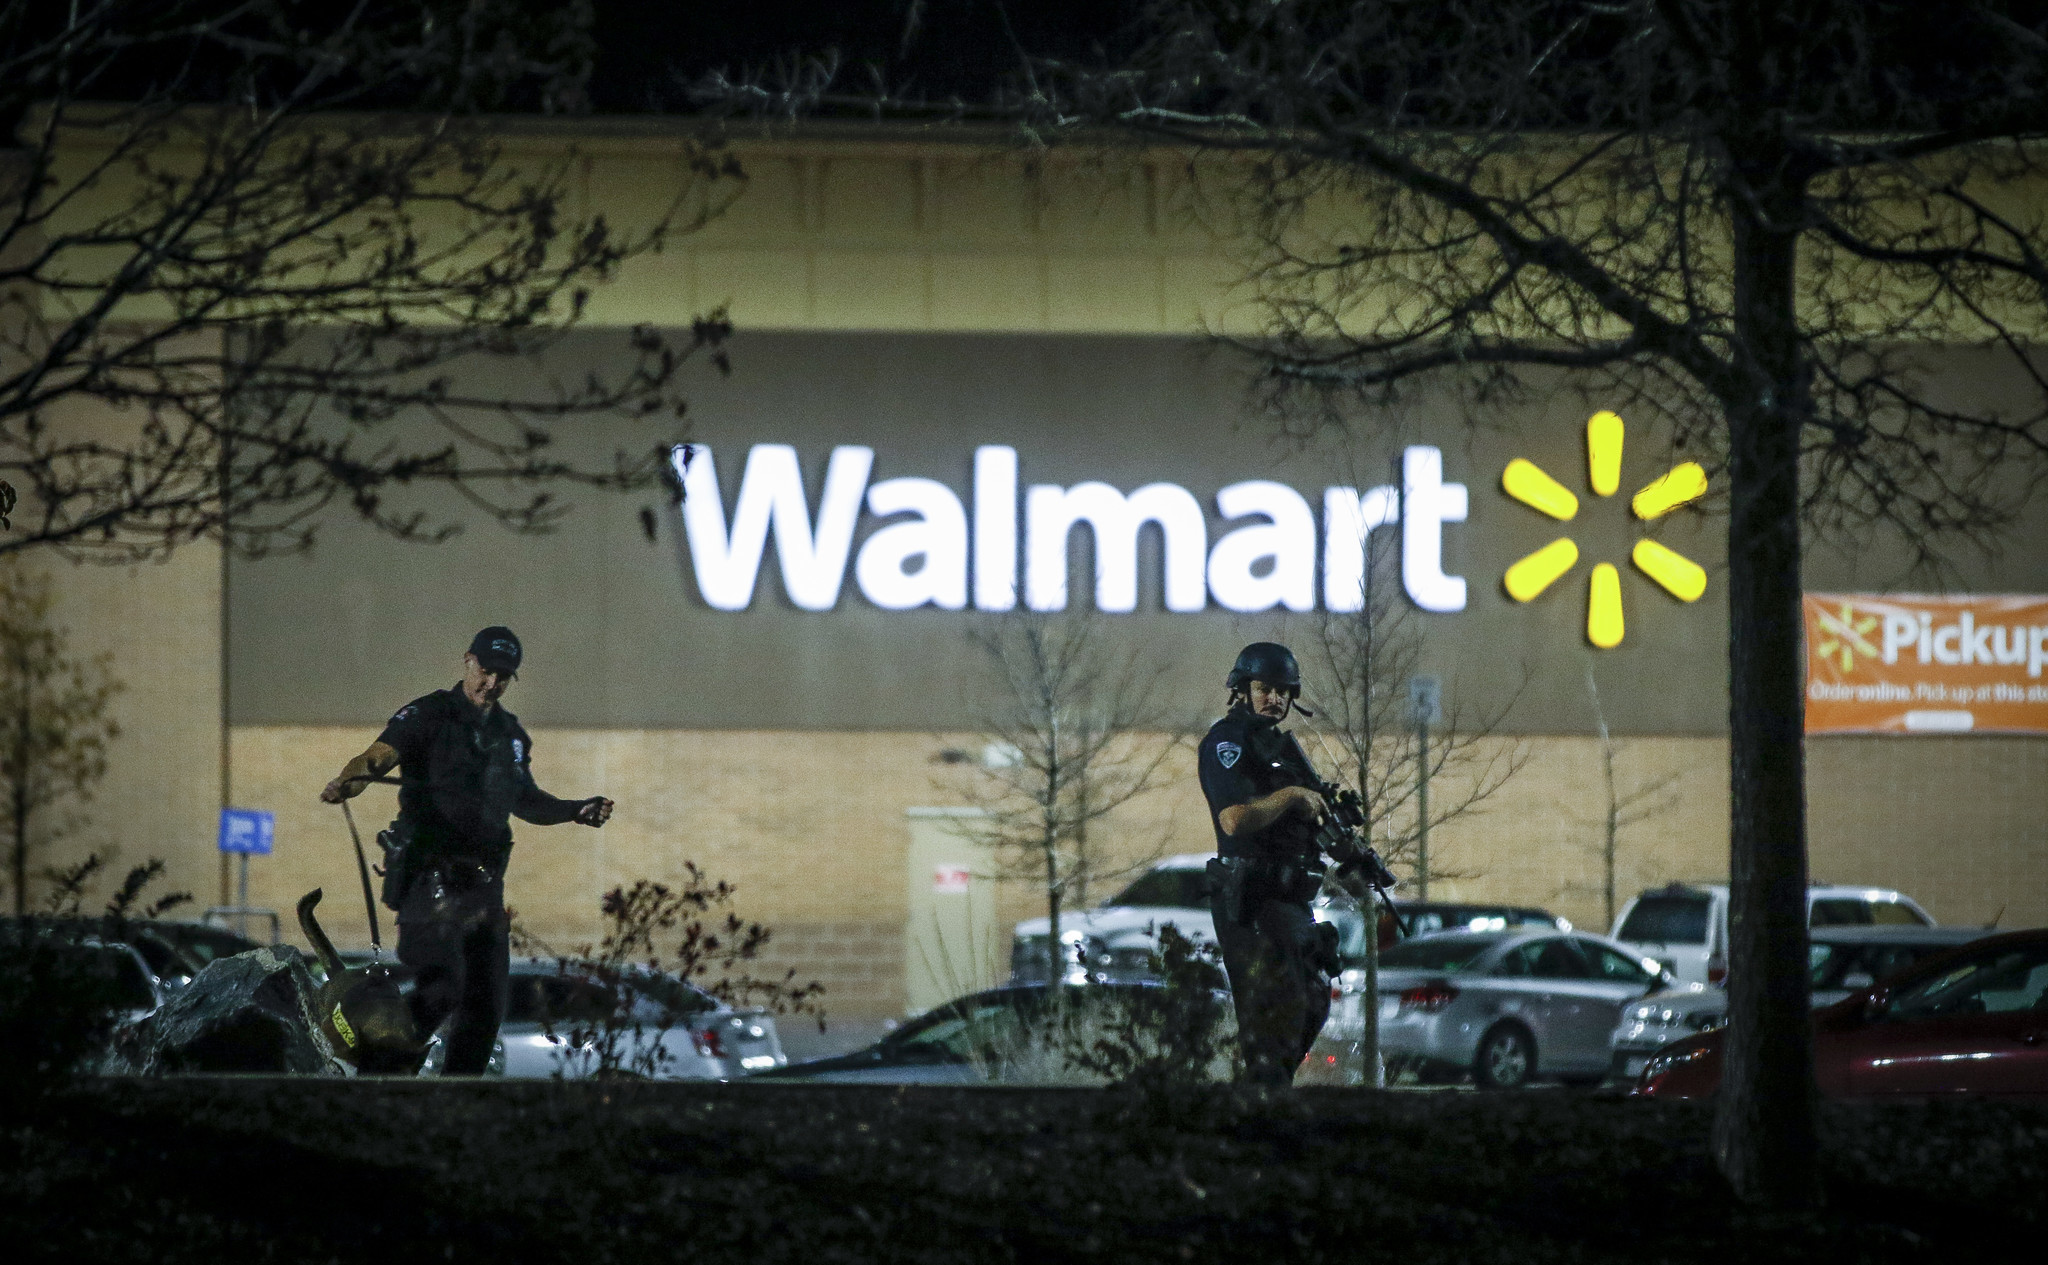 News El Paso >> Are more guns helpful? In Wal-Mart shooting, armed shoppers hinder police investigation ...